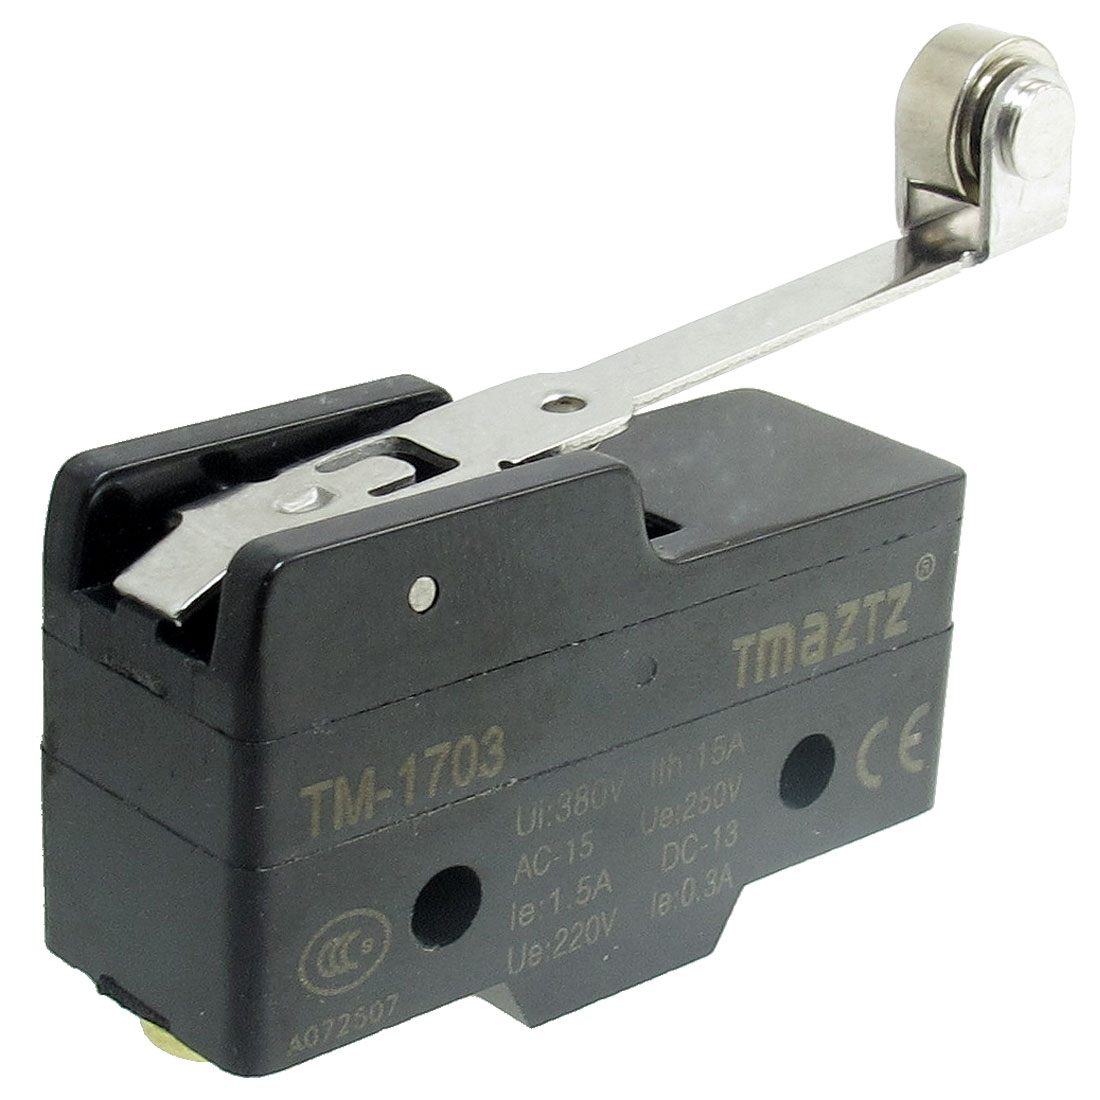 TM-1703 Long Hinge Roller Lever Momentary Micro Limit Switch